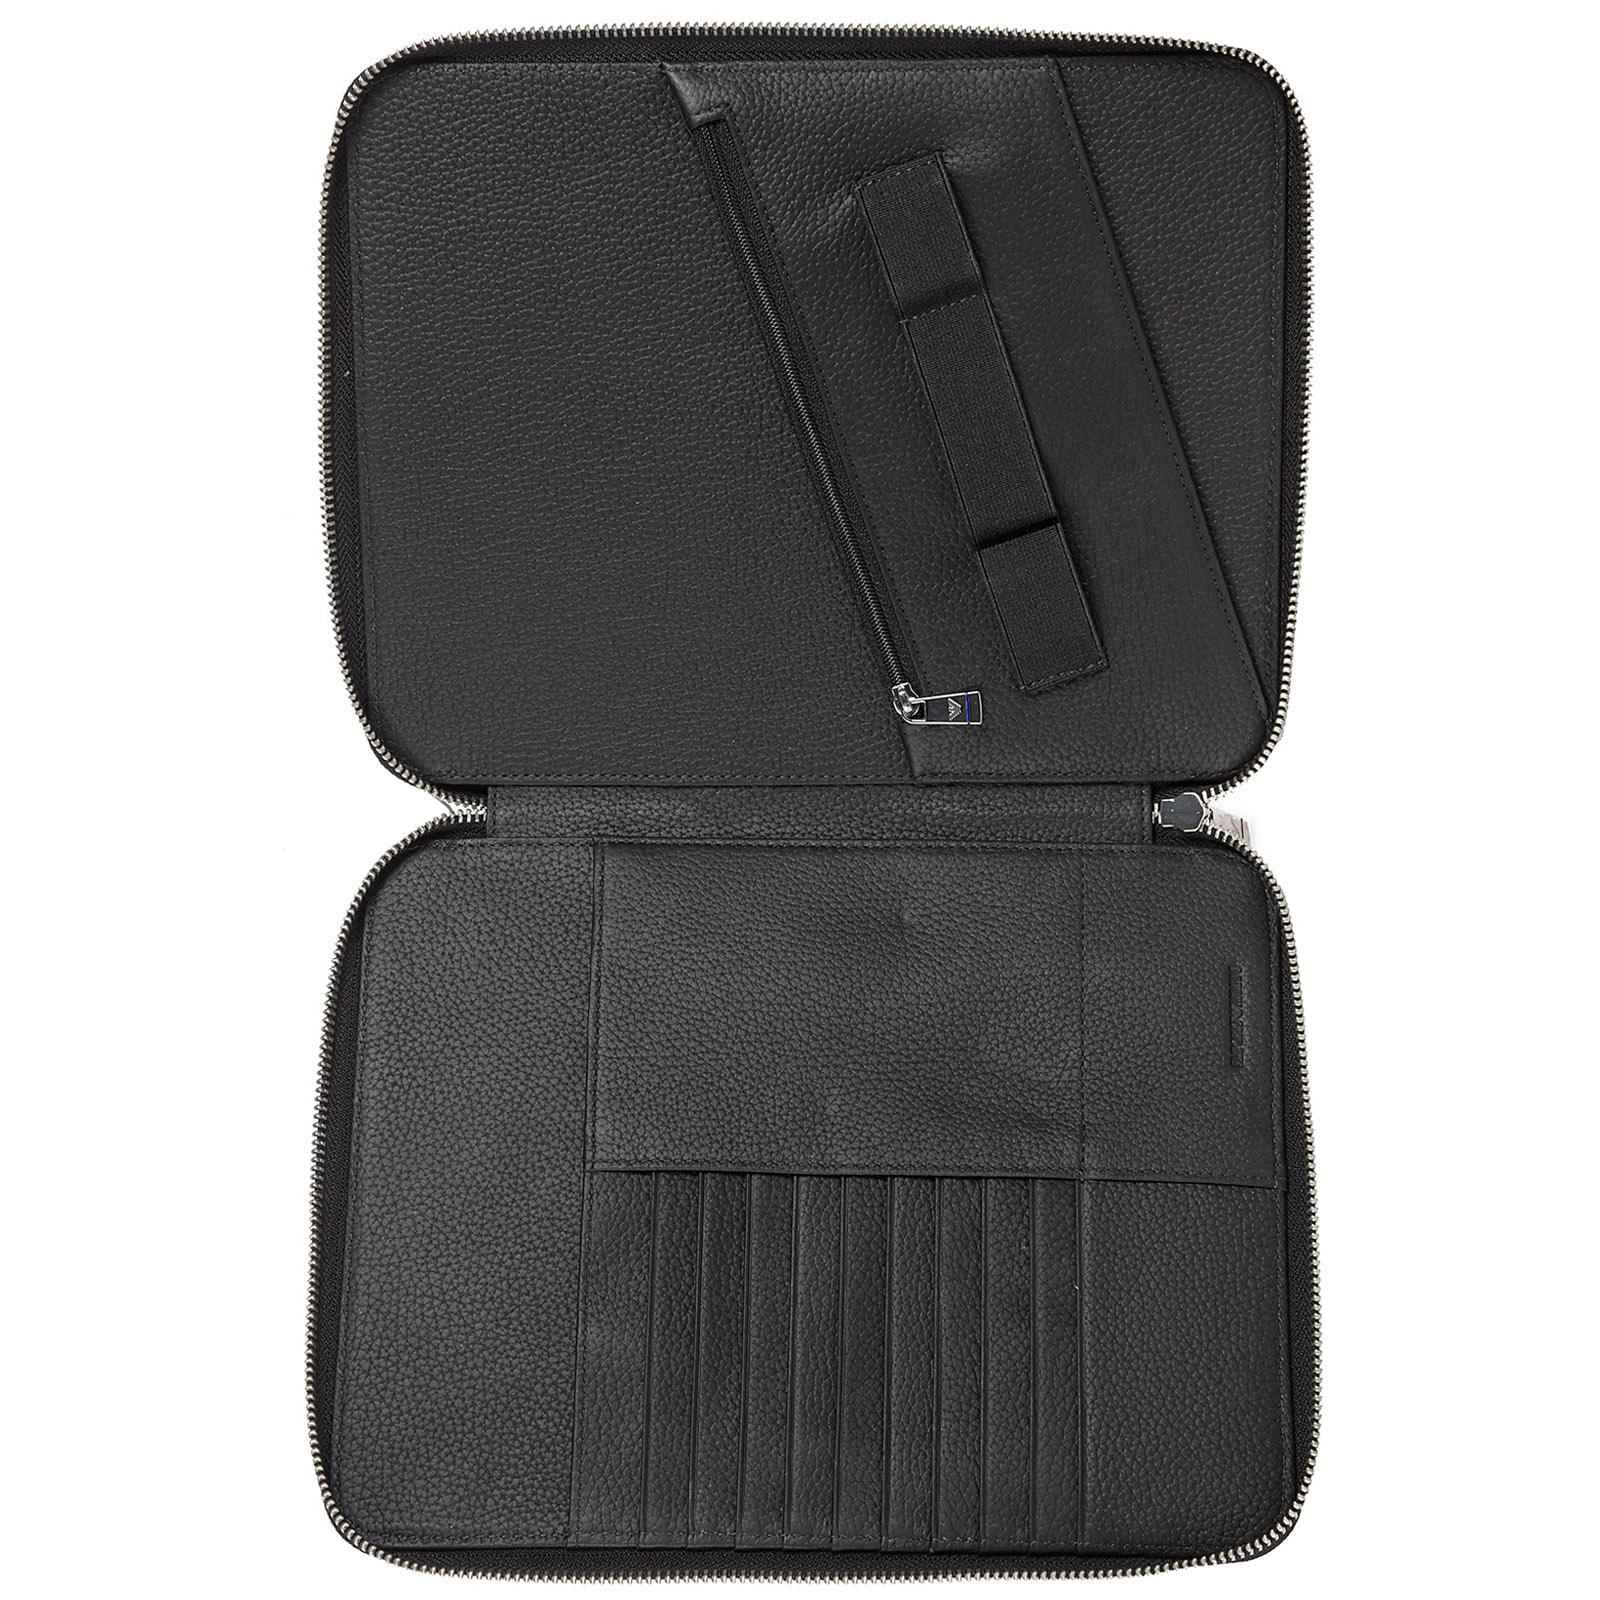 4ba9218a1e7f Lyst - Emporio Armani Smart Cover Case Tablet Ipad in Black for Men